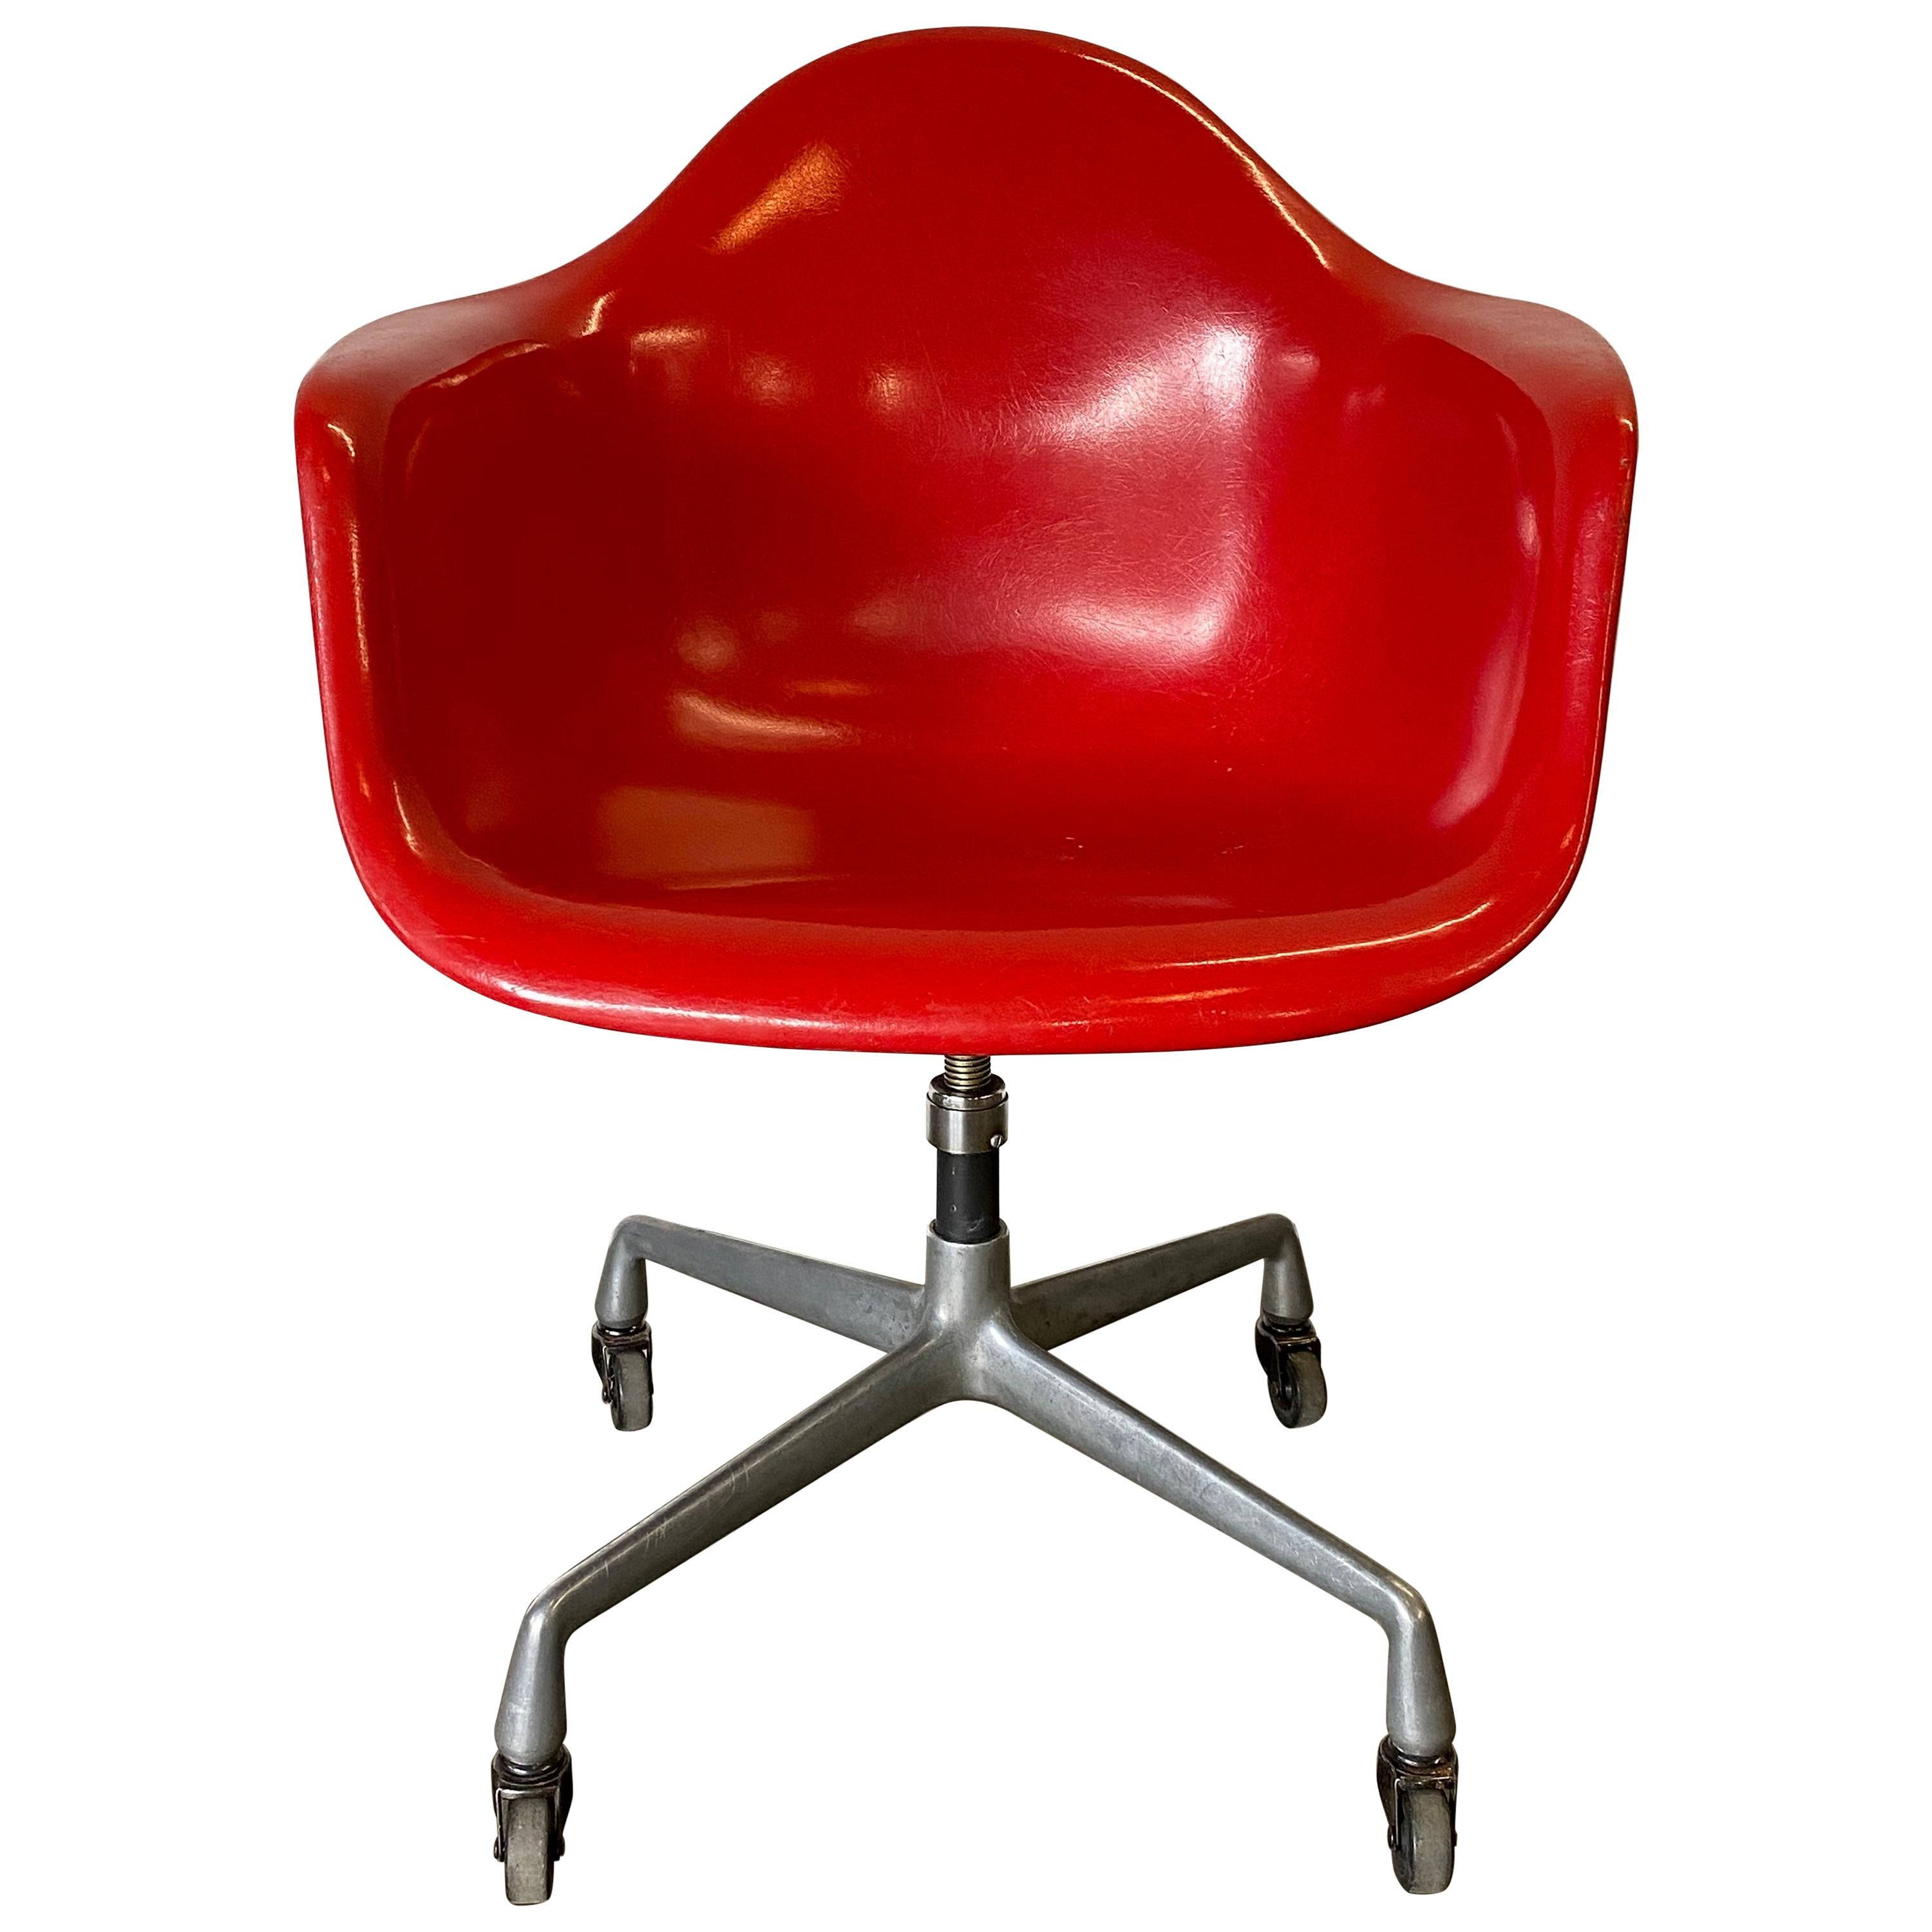 Herman Miller Eames Office Desk Chair in Cherry Red